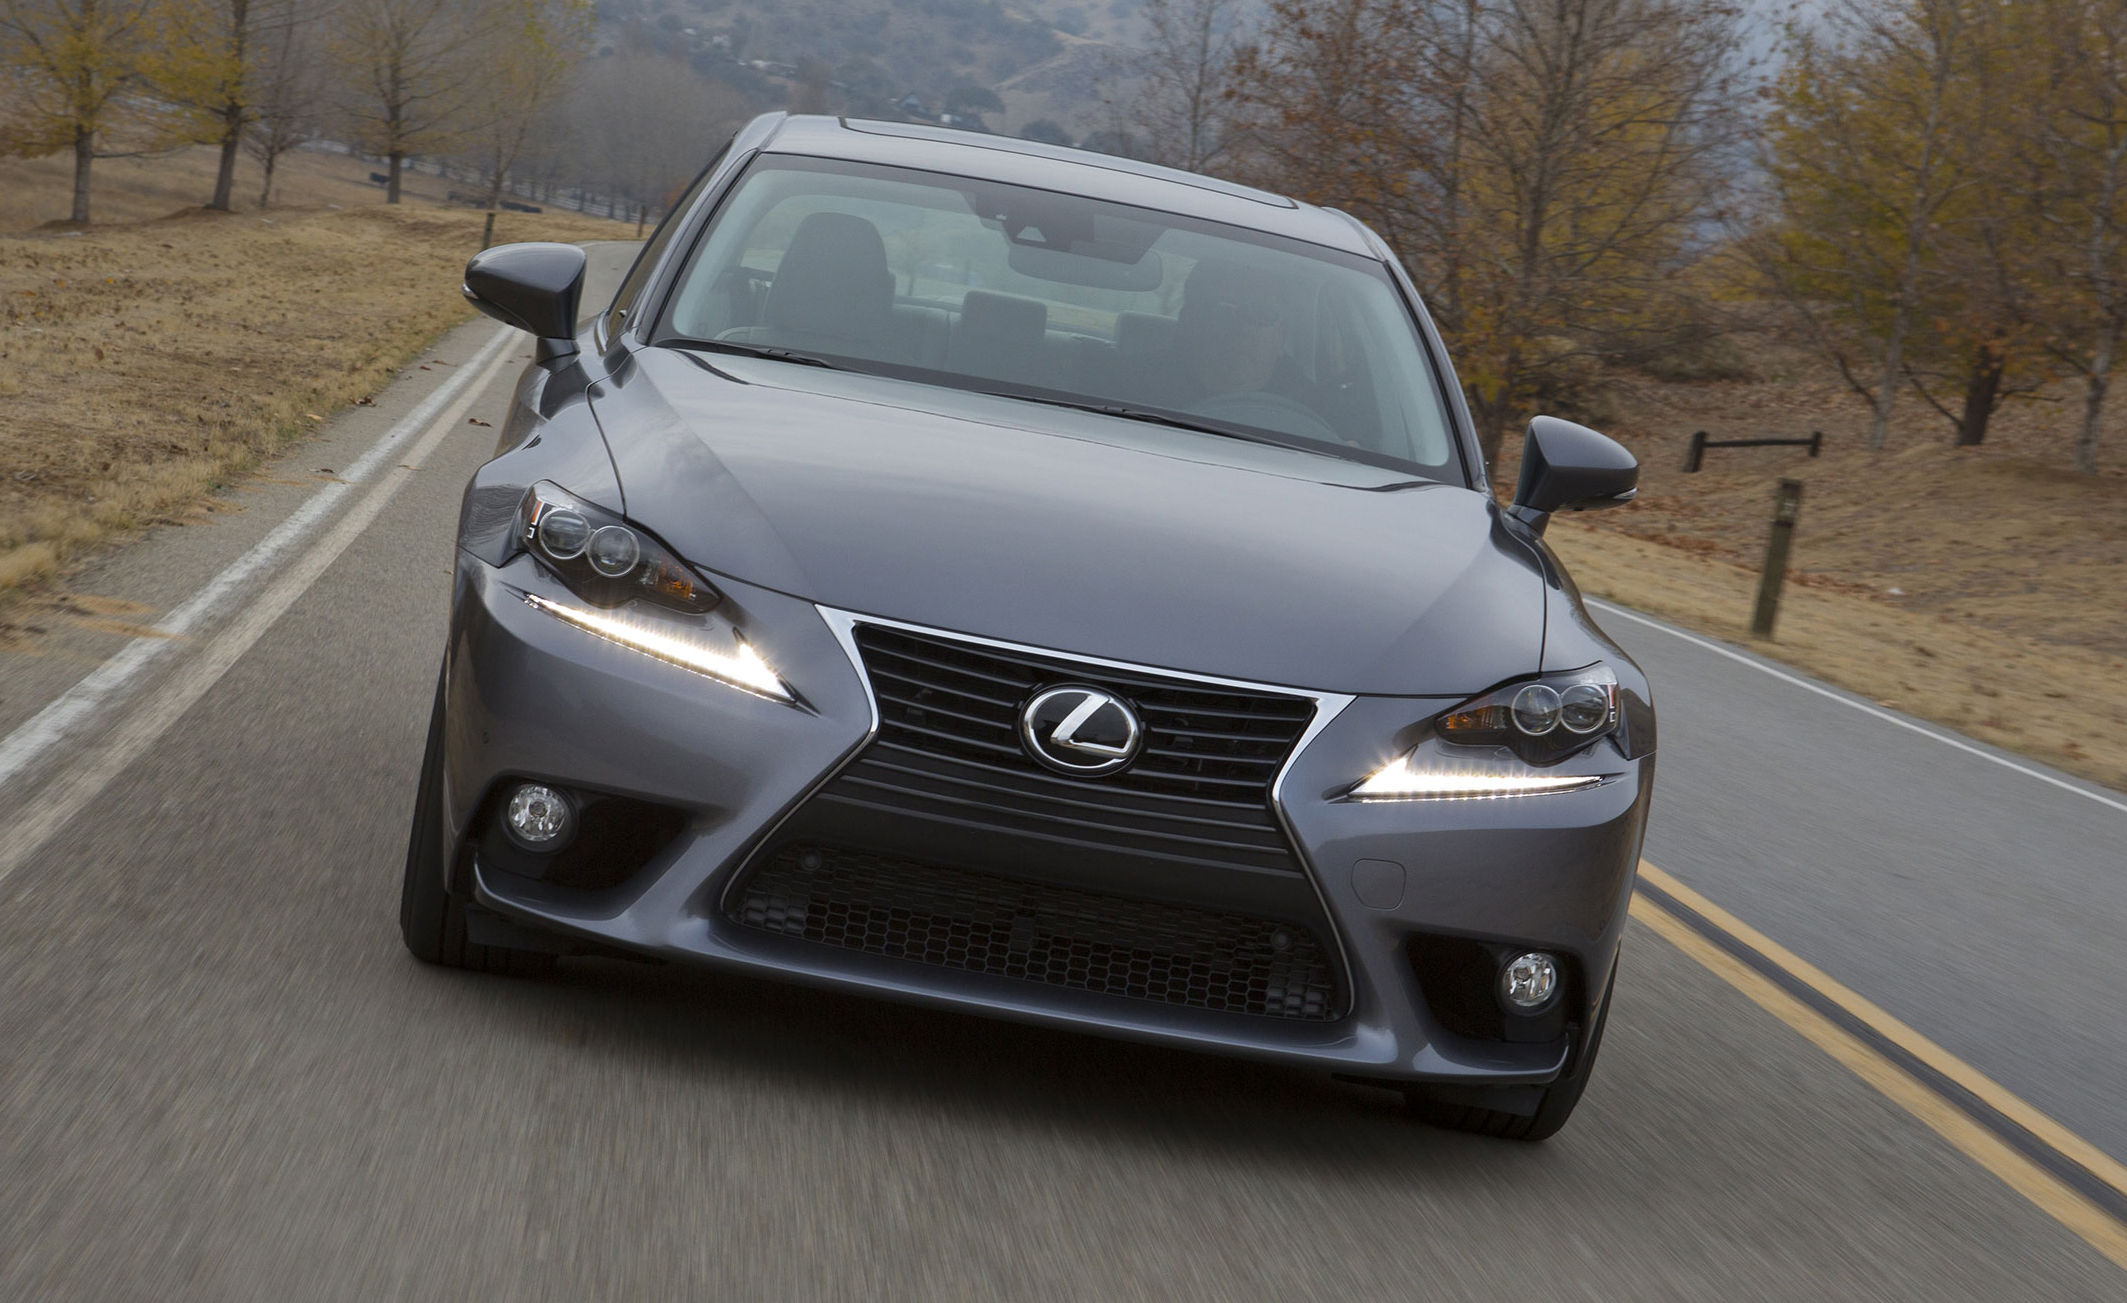 Lexus Is 350 2018 >> New 2014 Lexus IS officially revealed – IS 250, IS 350, F Sport, IS 300h, the first ever hybrid ...